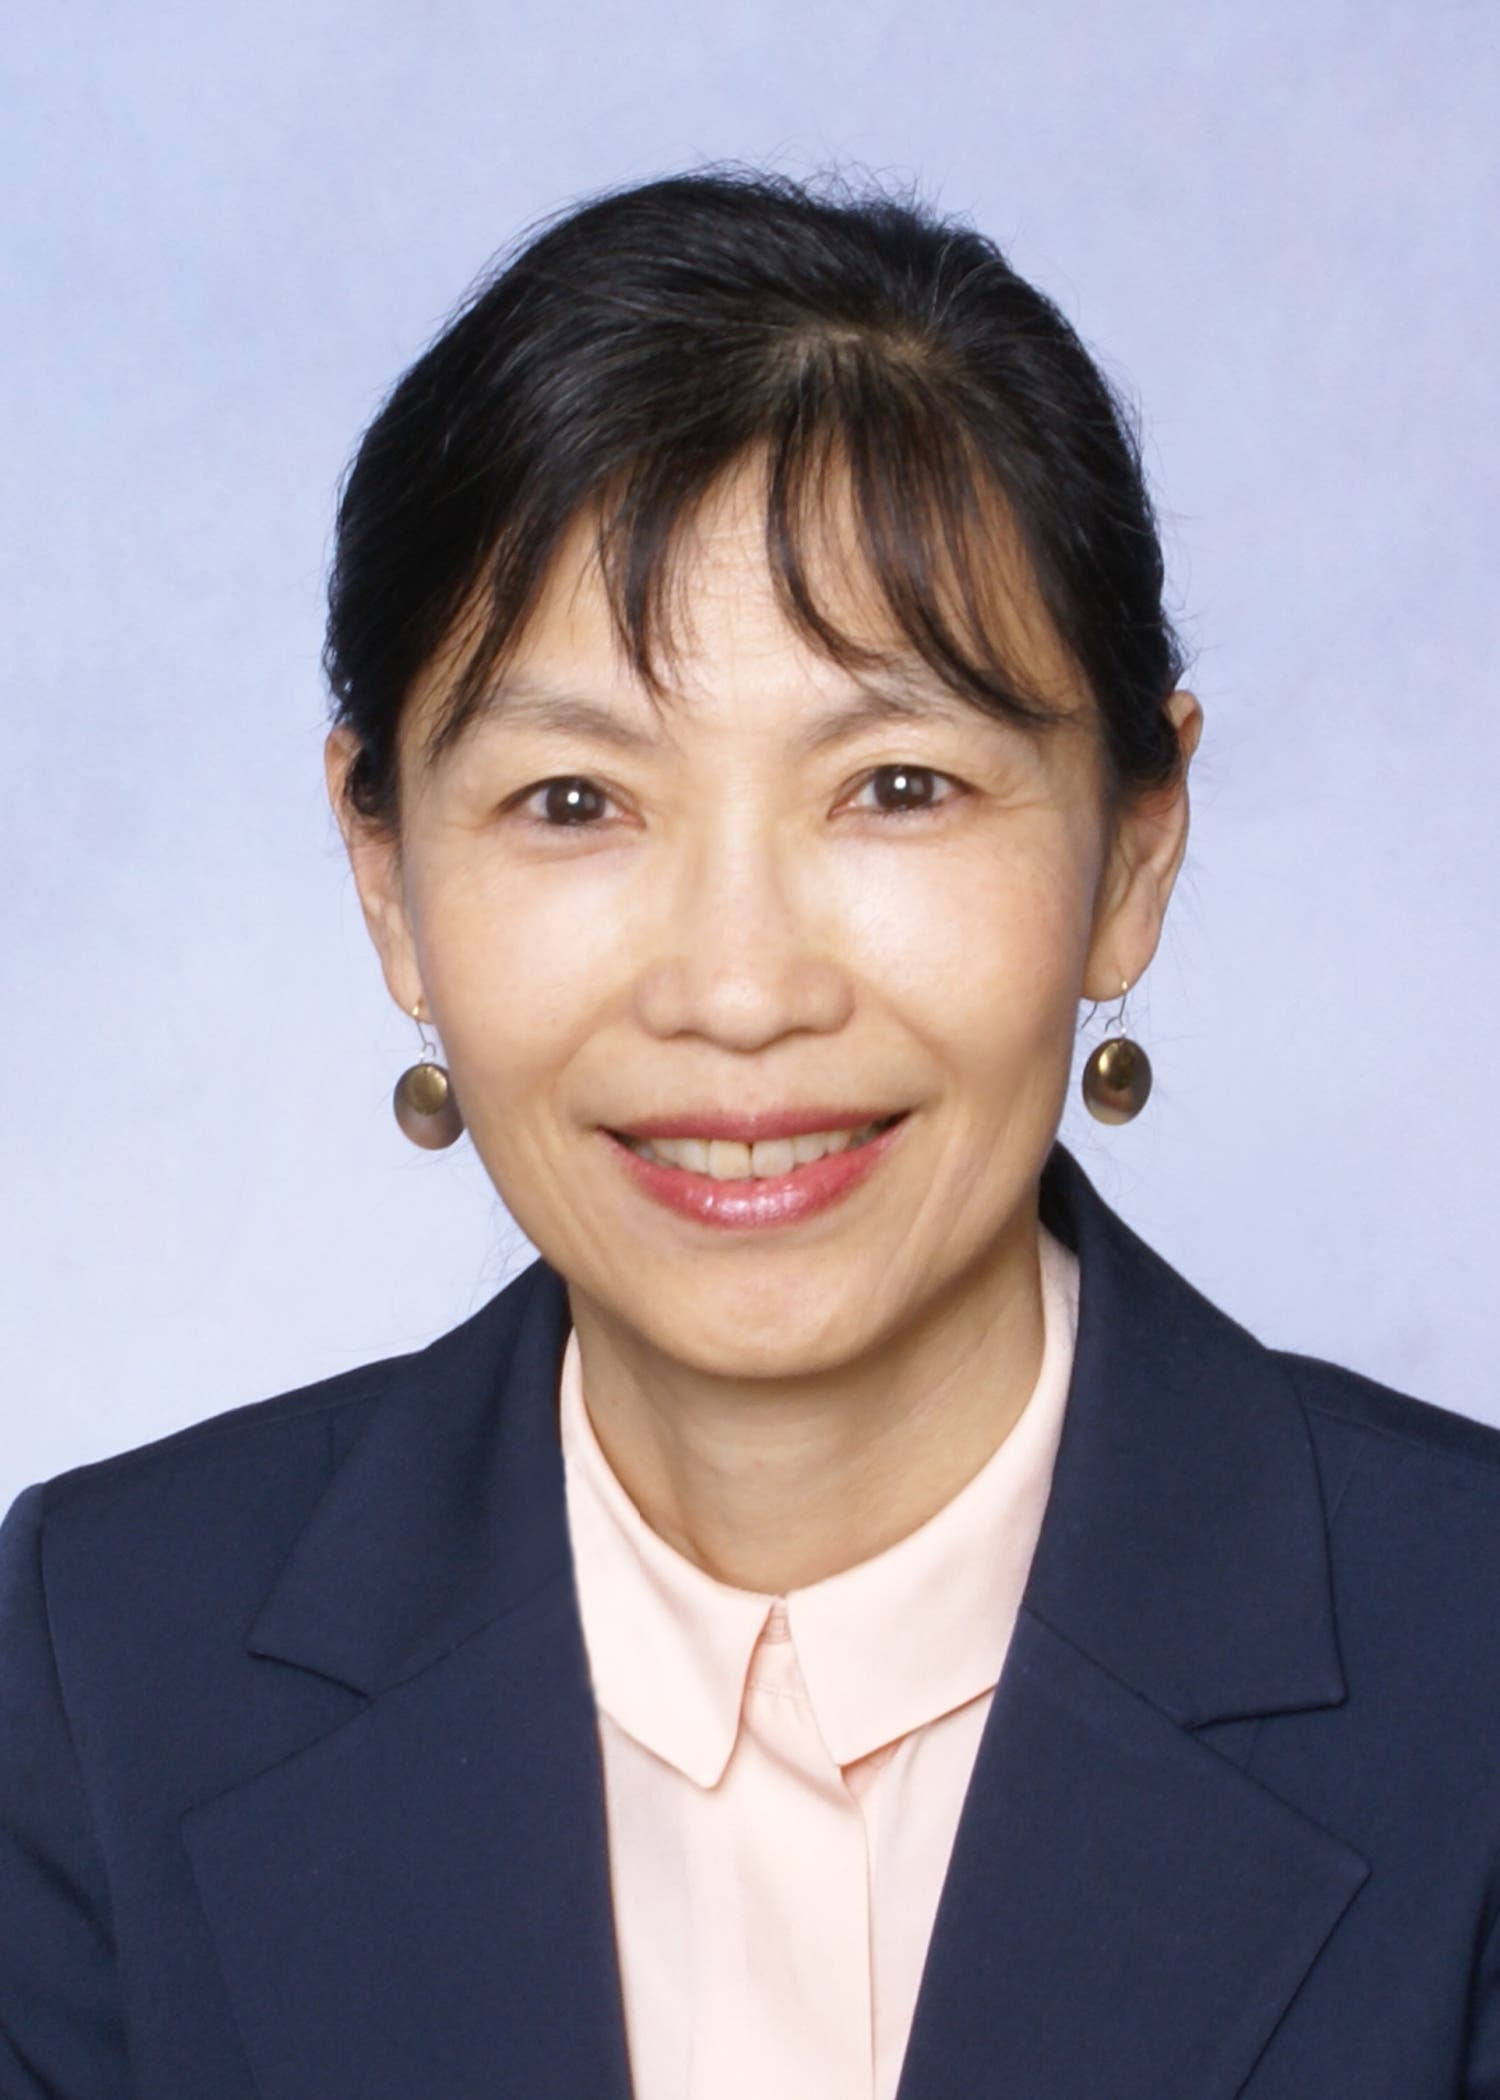 Illinois Bone & Joint Institute Welcomes Dr  Chinyoung Park